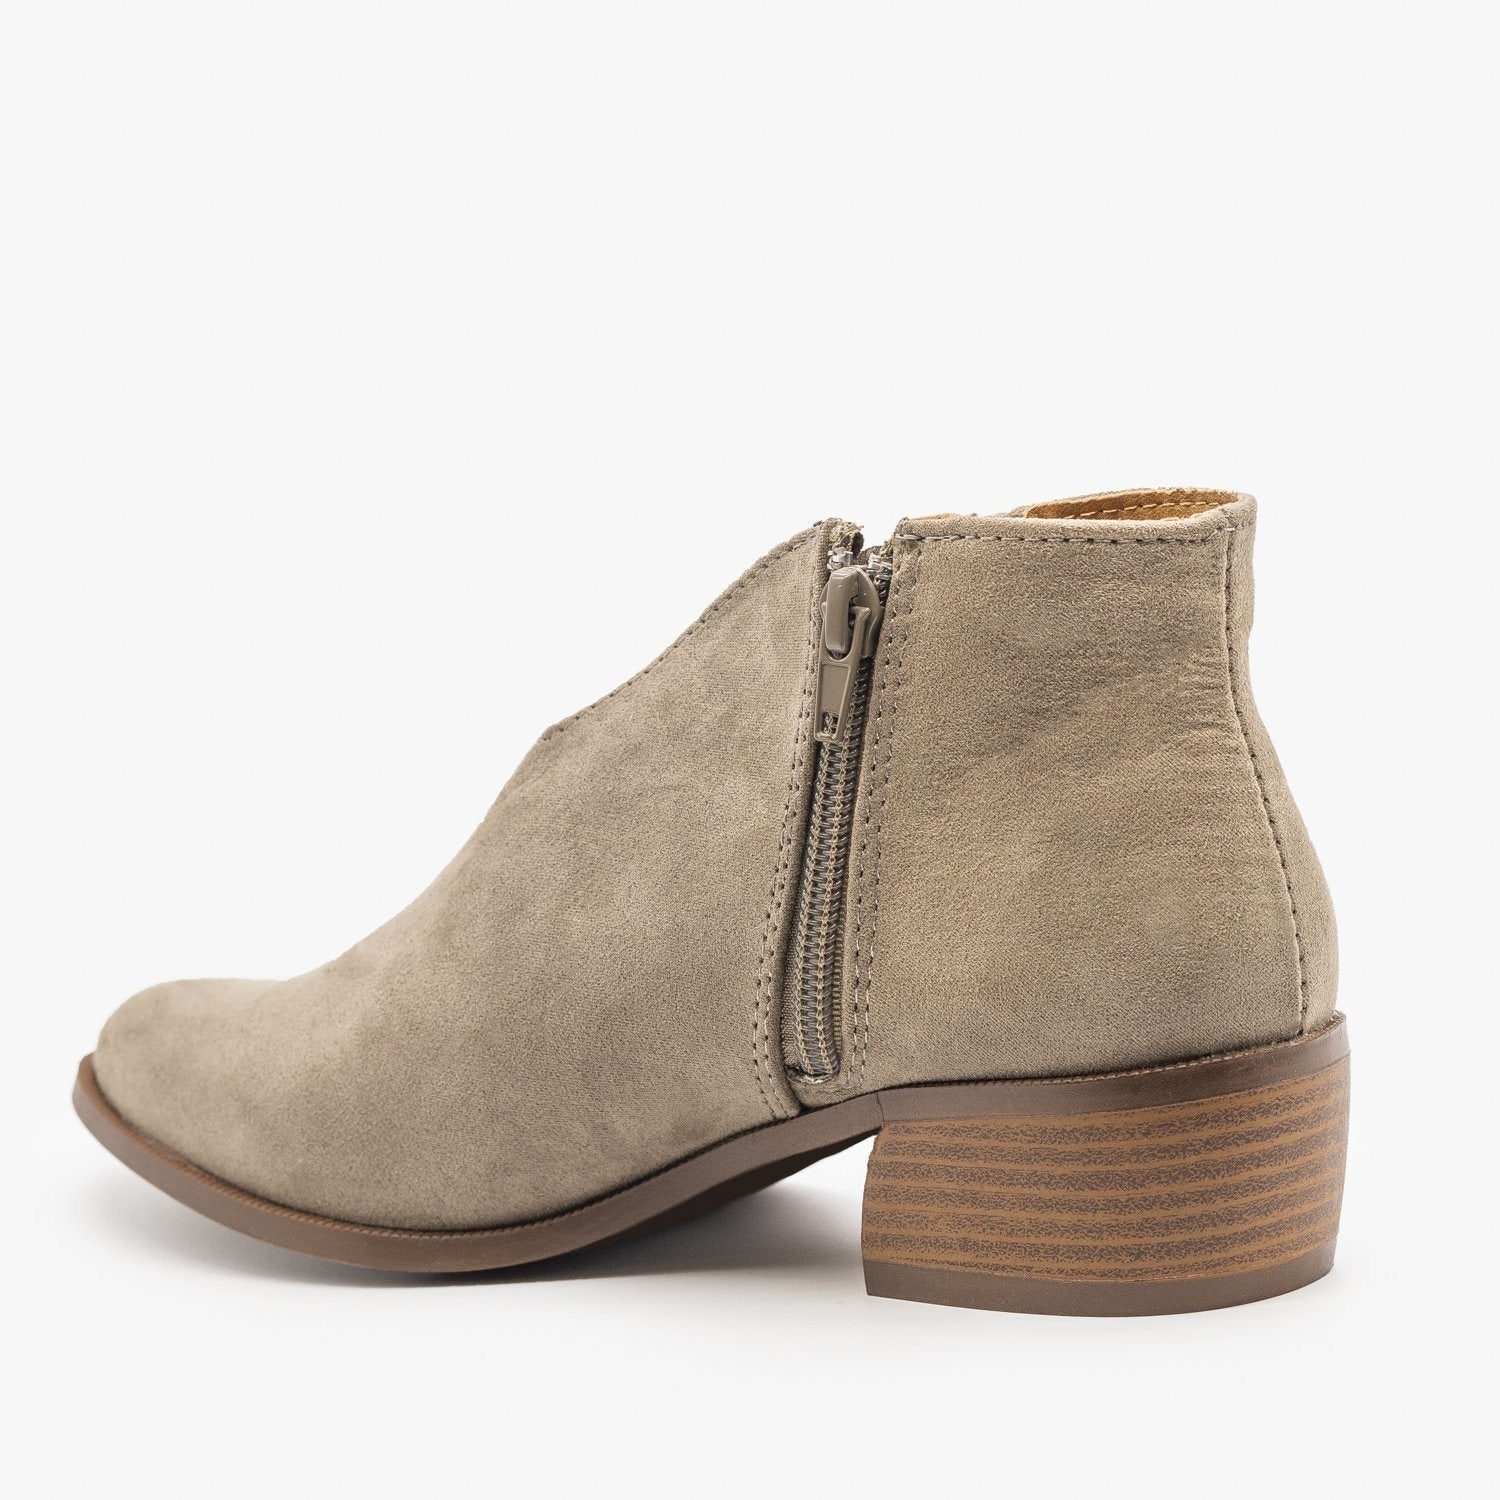 Women/'s Shoes Qupid RAGER 27 Casual V Cut Ankle Booties TAUPE SUEDE *New*